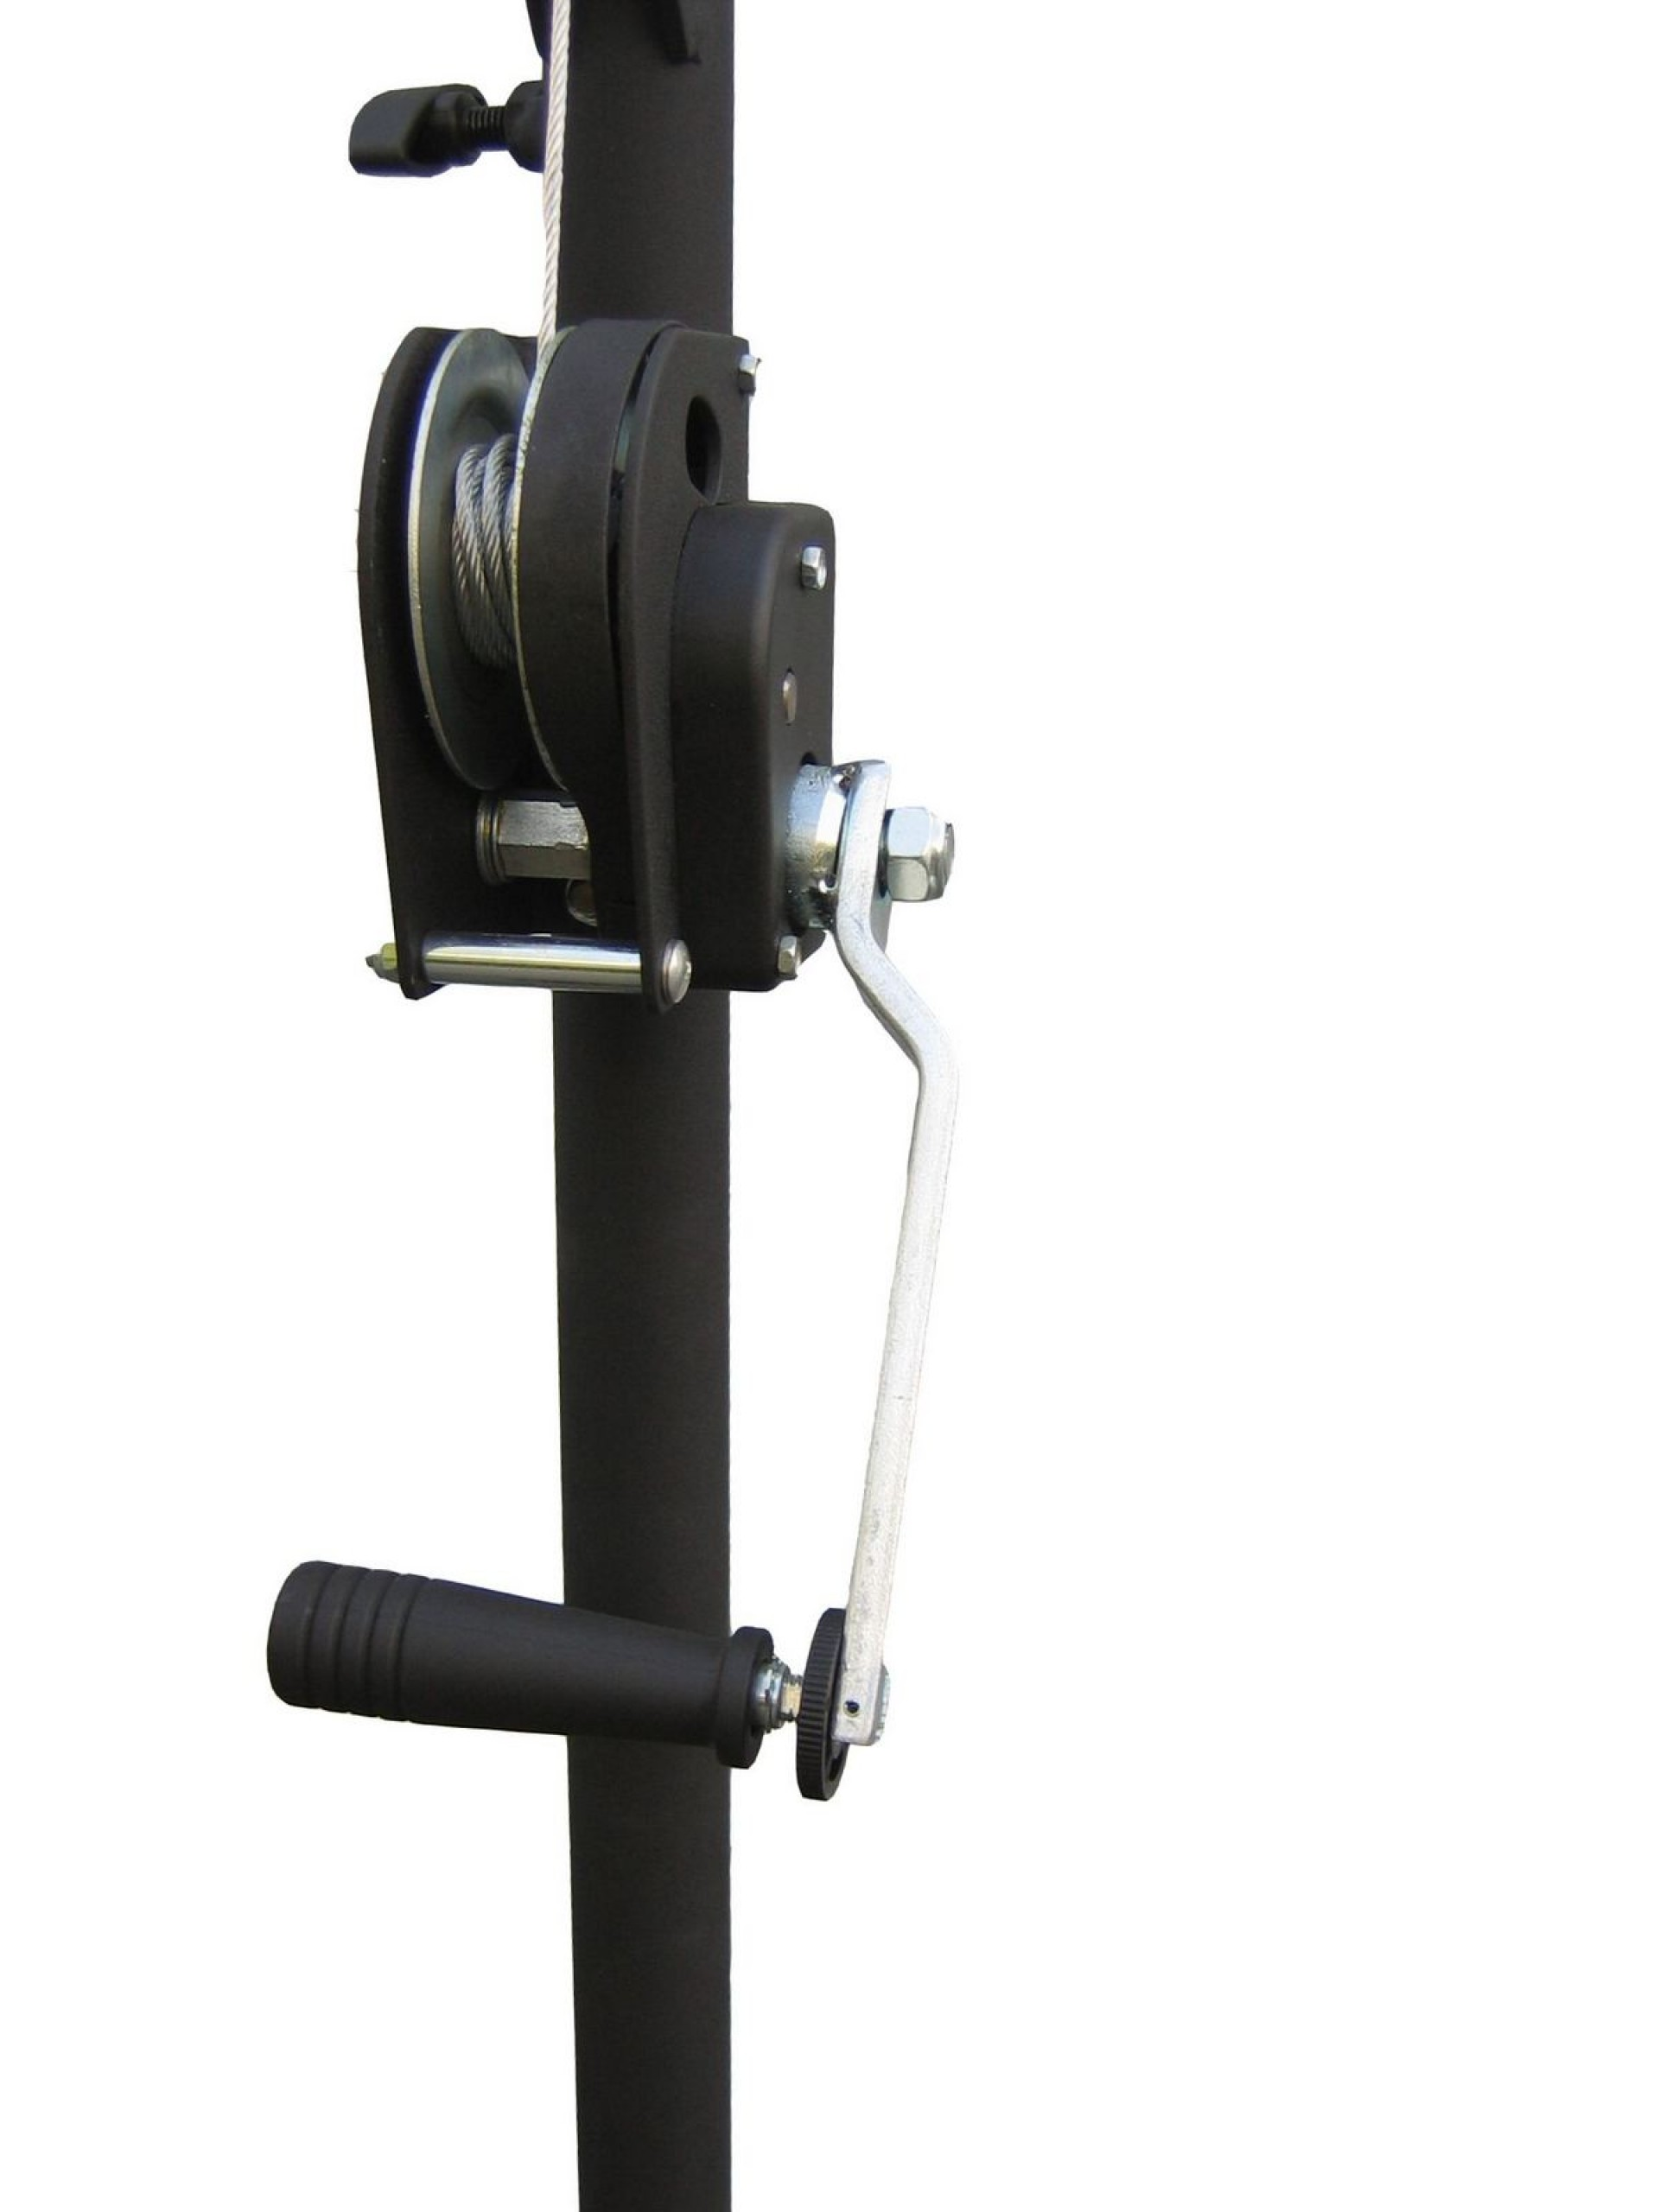 JBSYSTEMS LS 270 Windup stand